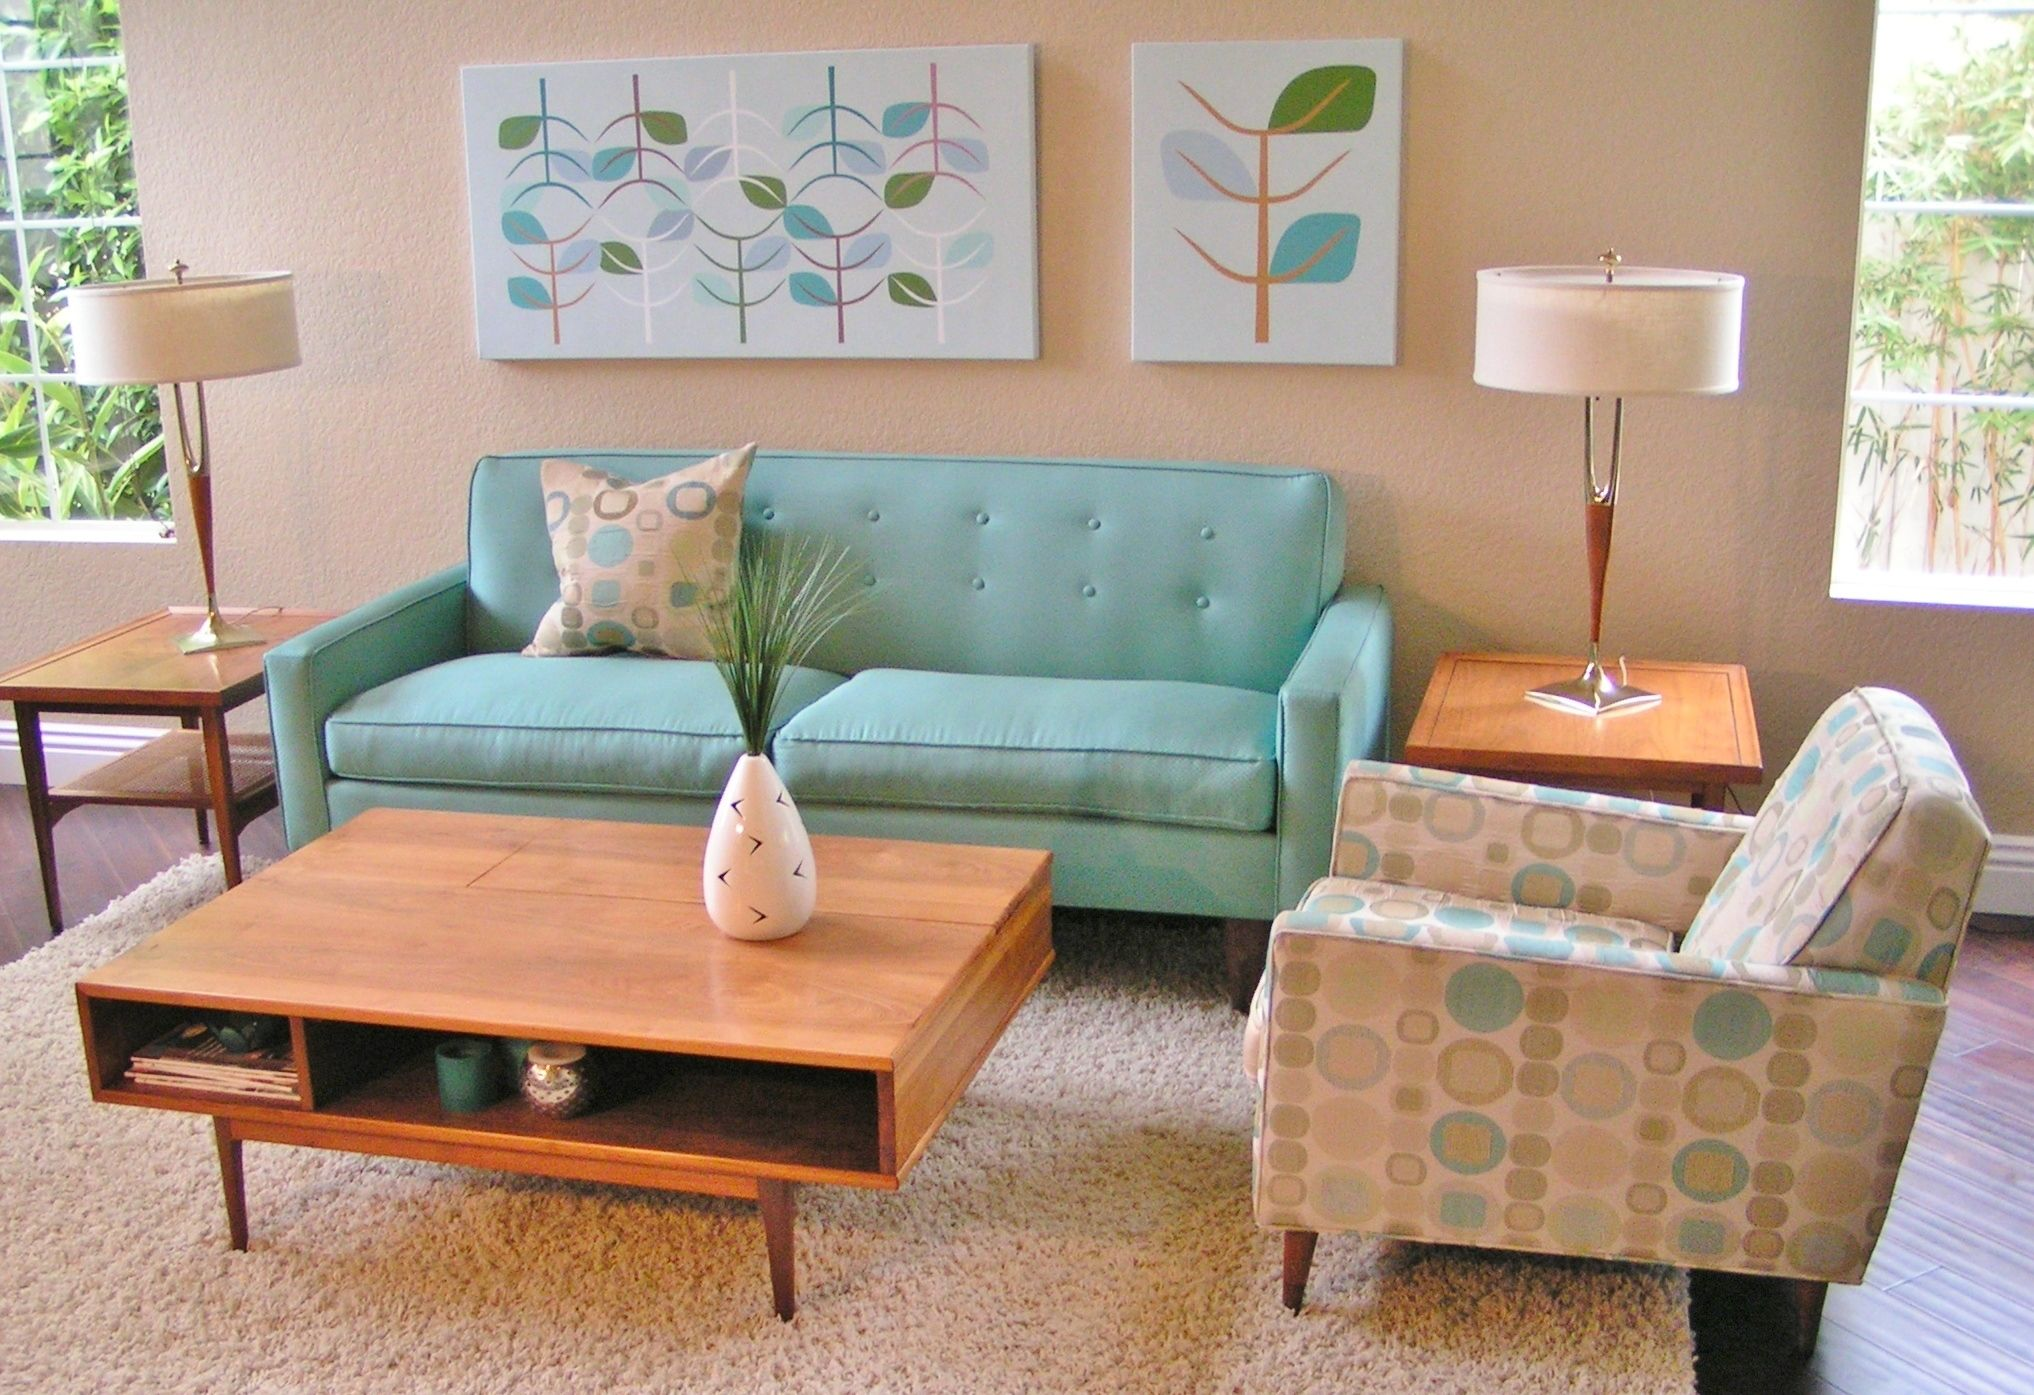 Best Great Mcm Furniture And Colors Mid Century Modern Decor 640 x 480